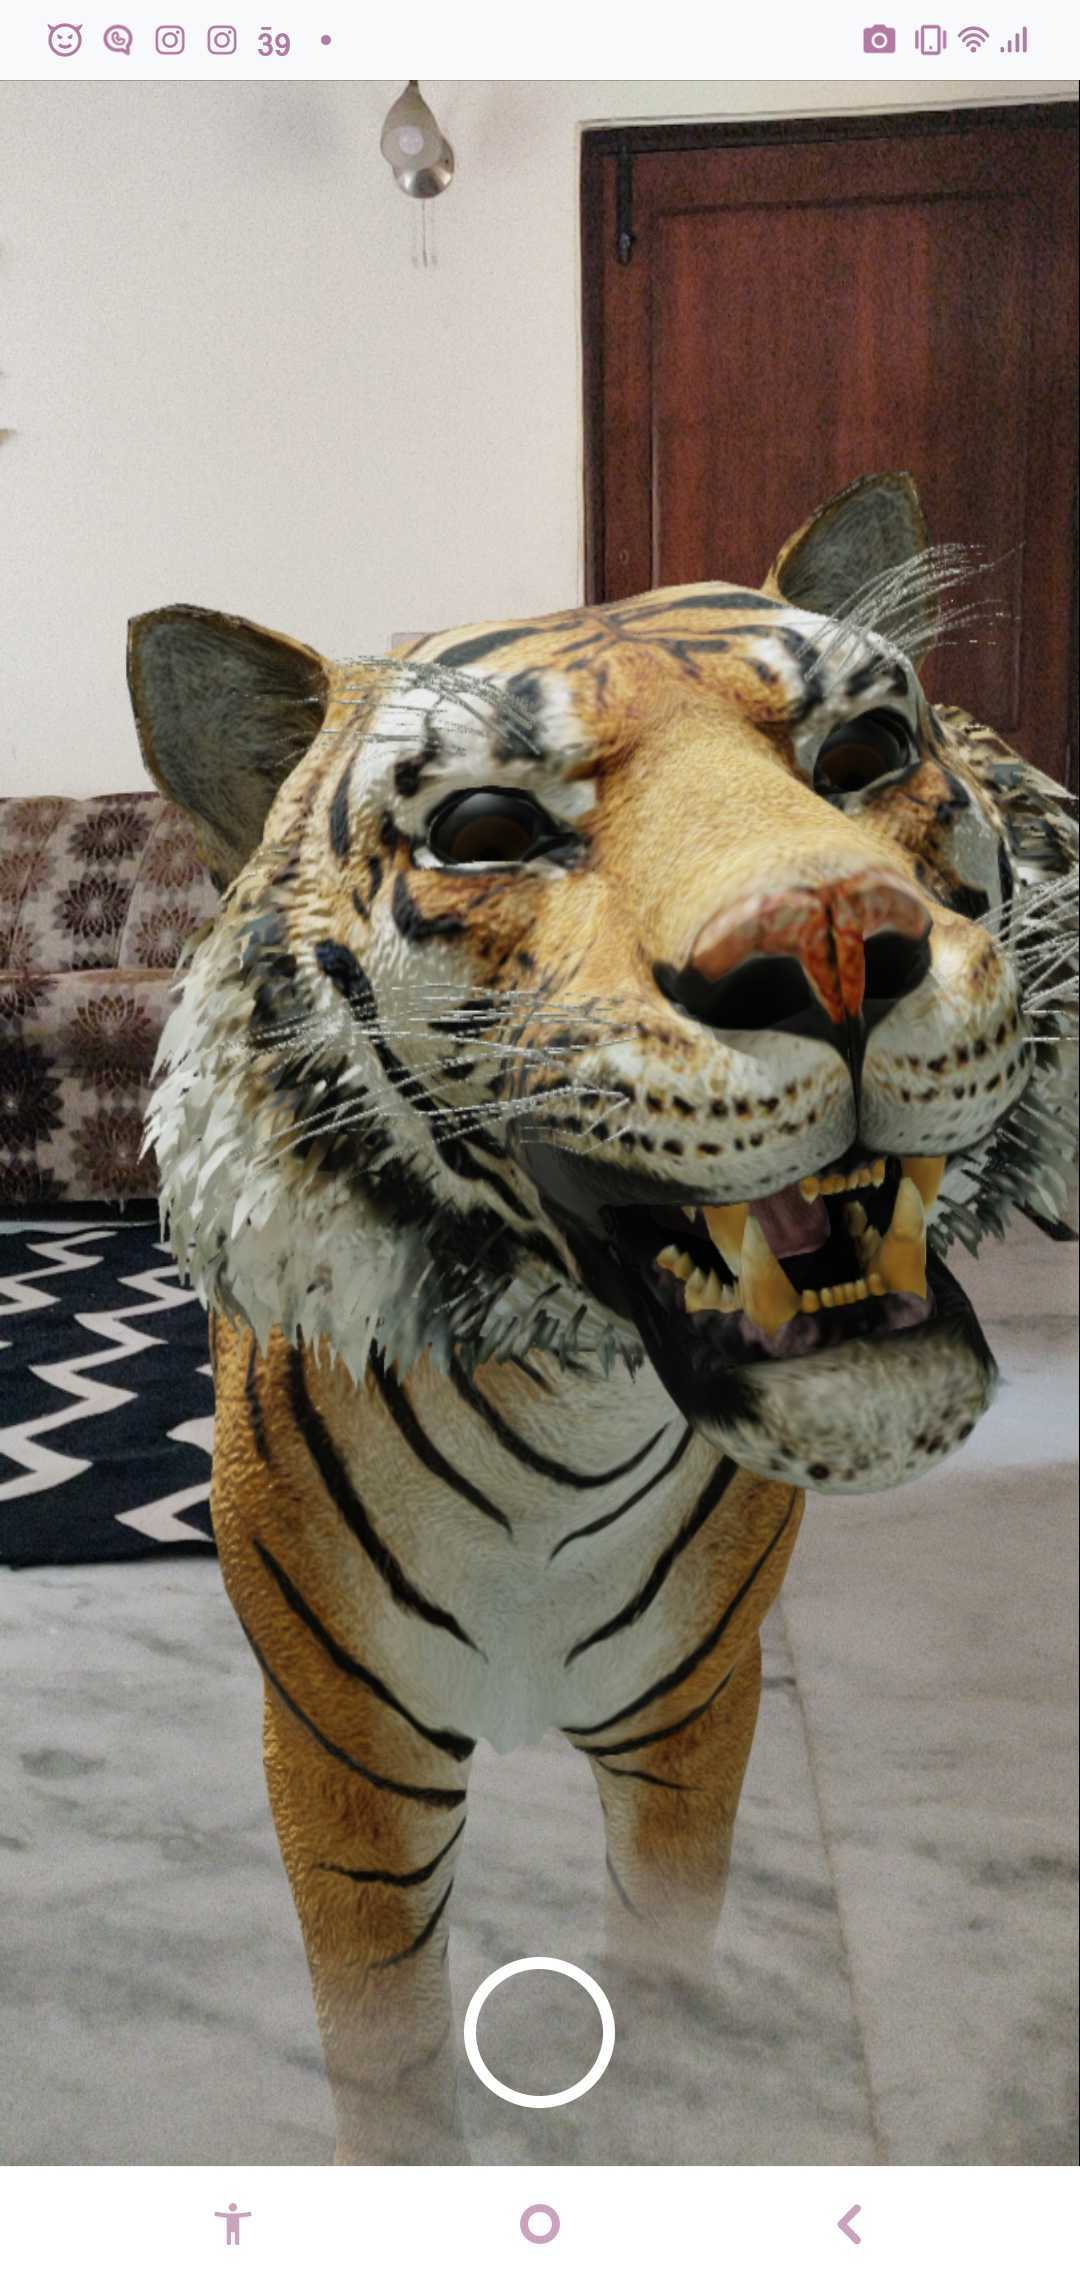 With Google 3D animals, we can estimate their actual size in relation to things around us